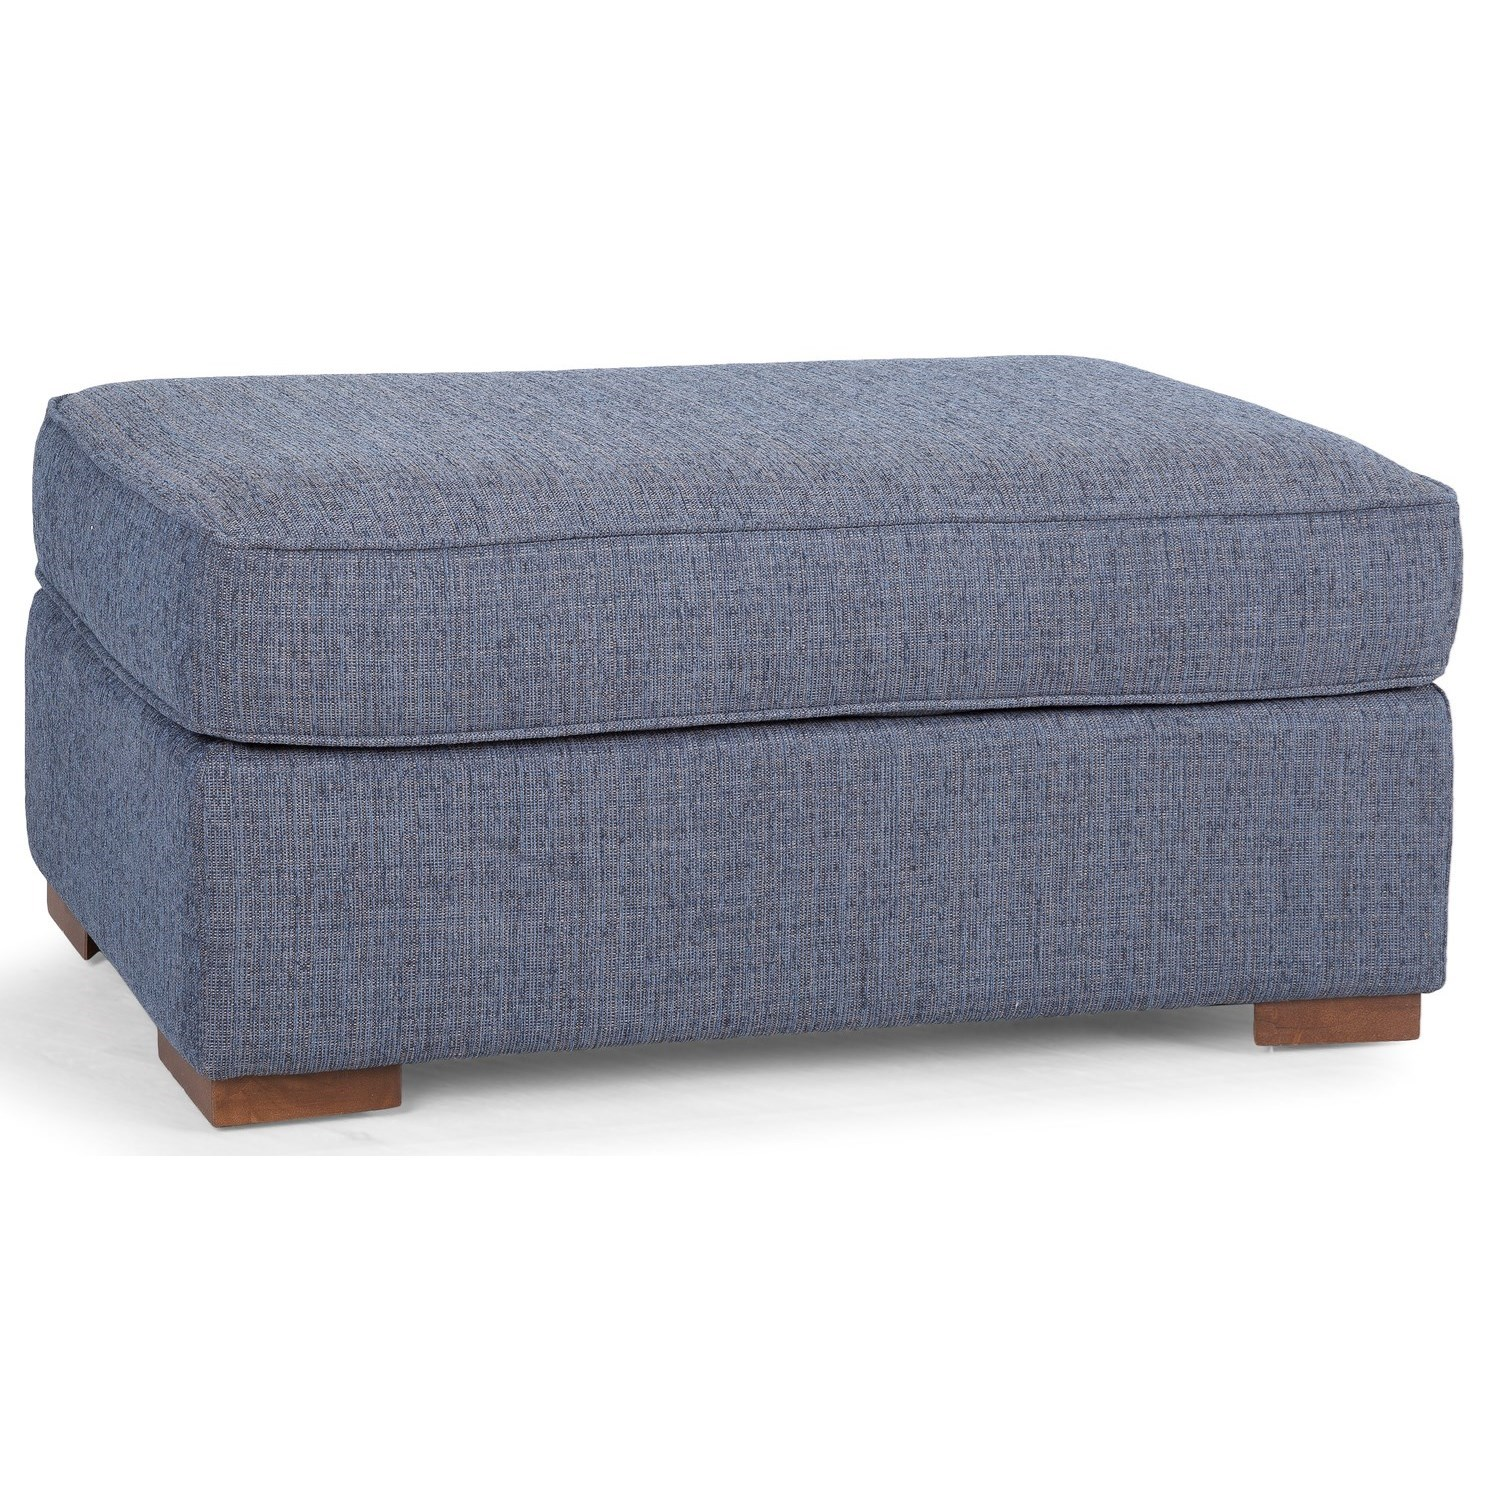 2591 Ottoman by Decor-Rest at Rooms for Less